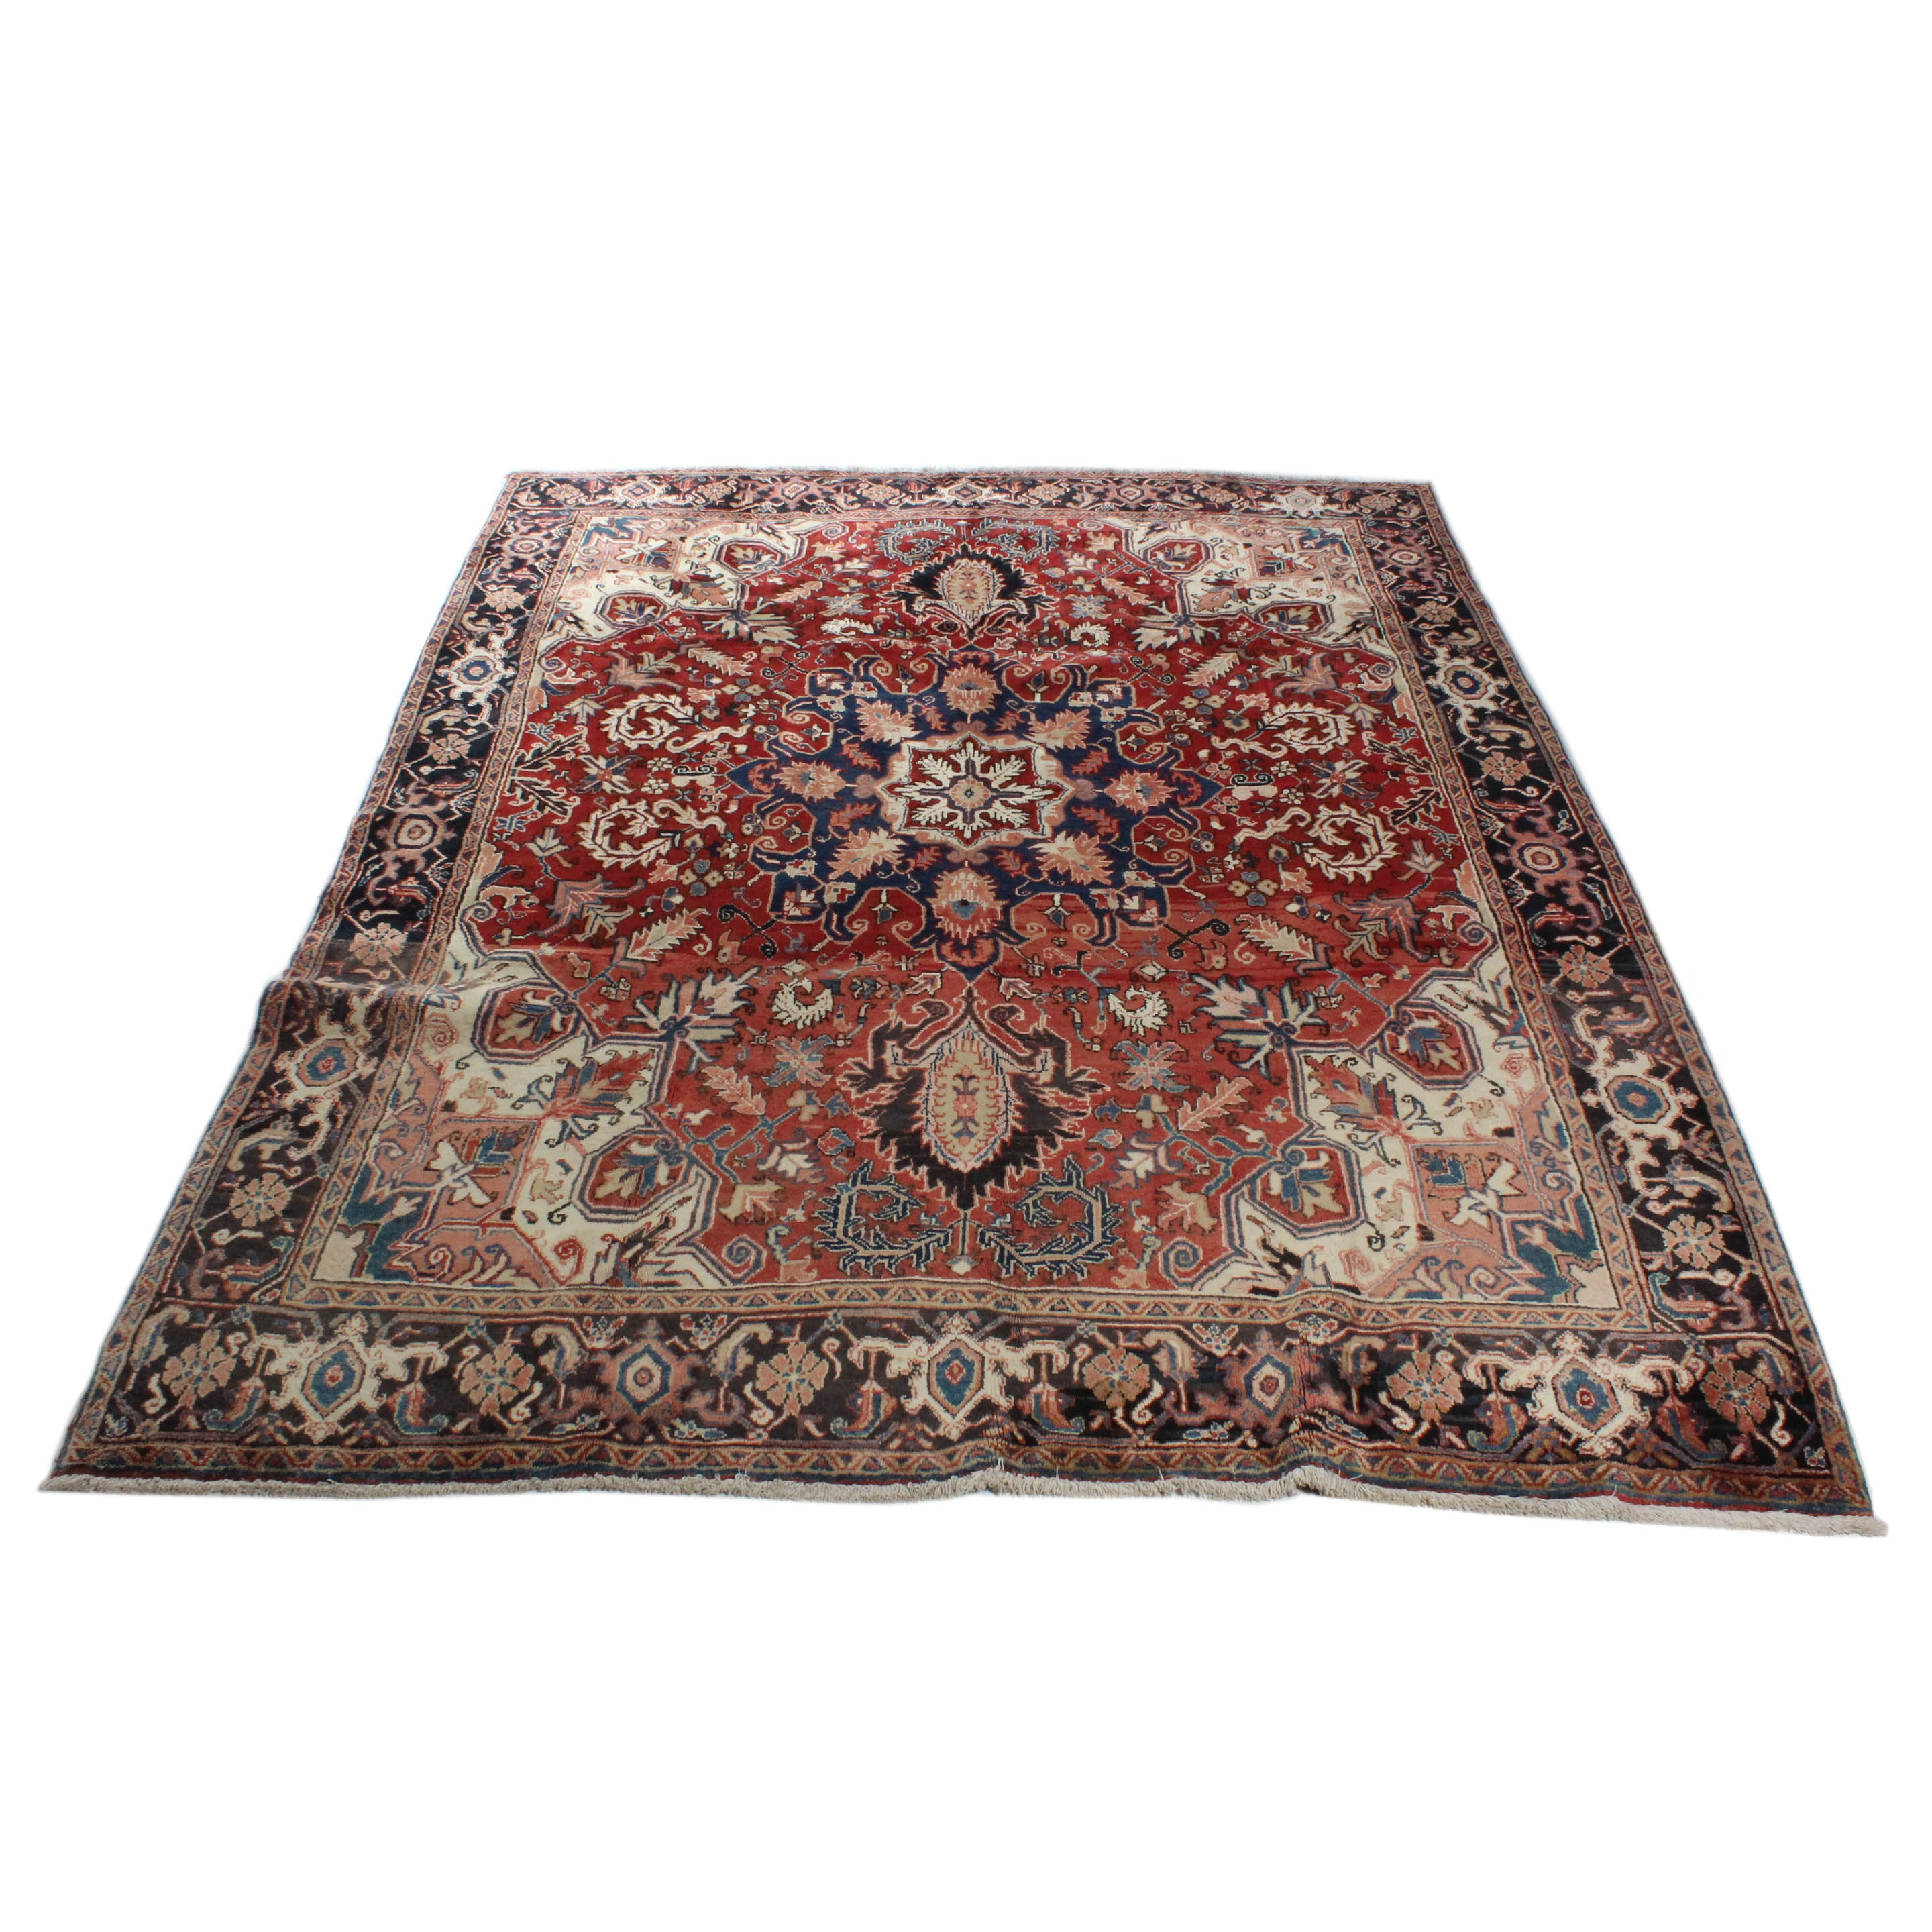 Semi-Antique Hand-Knotted Persian Heriz Room Size Rug